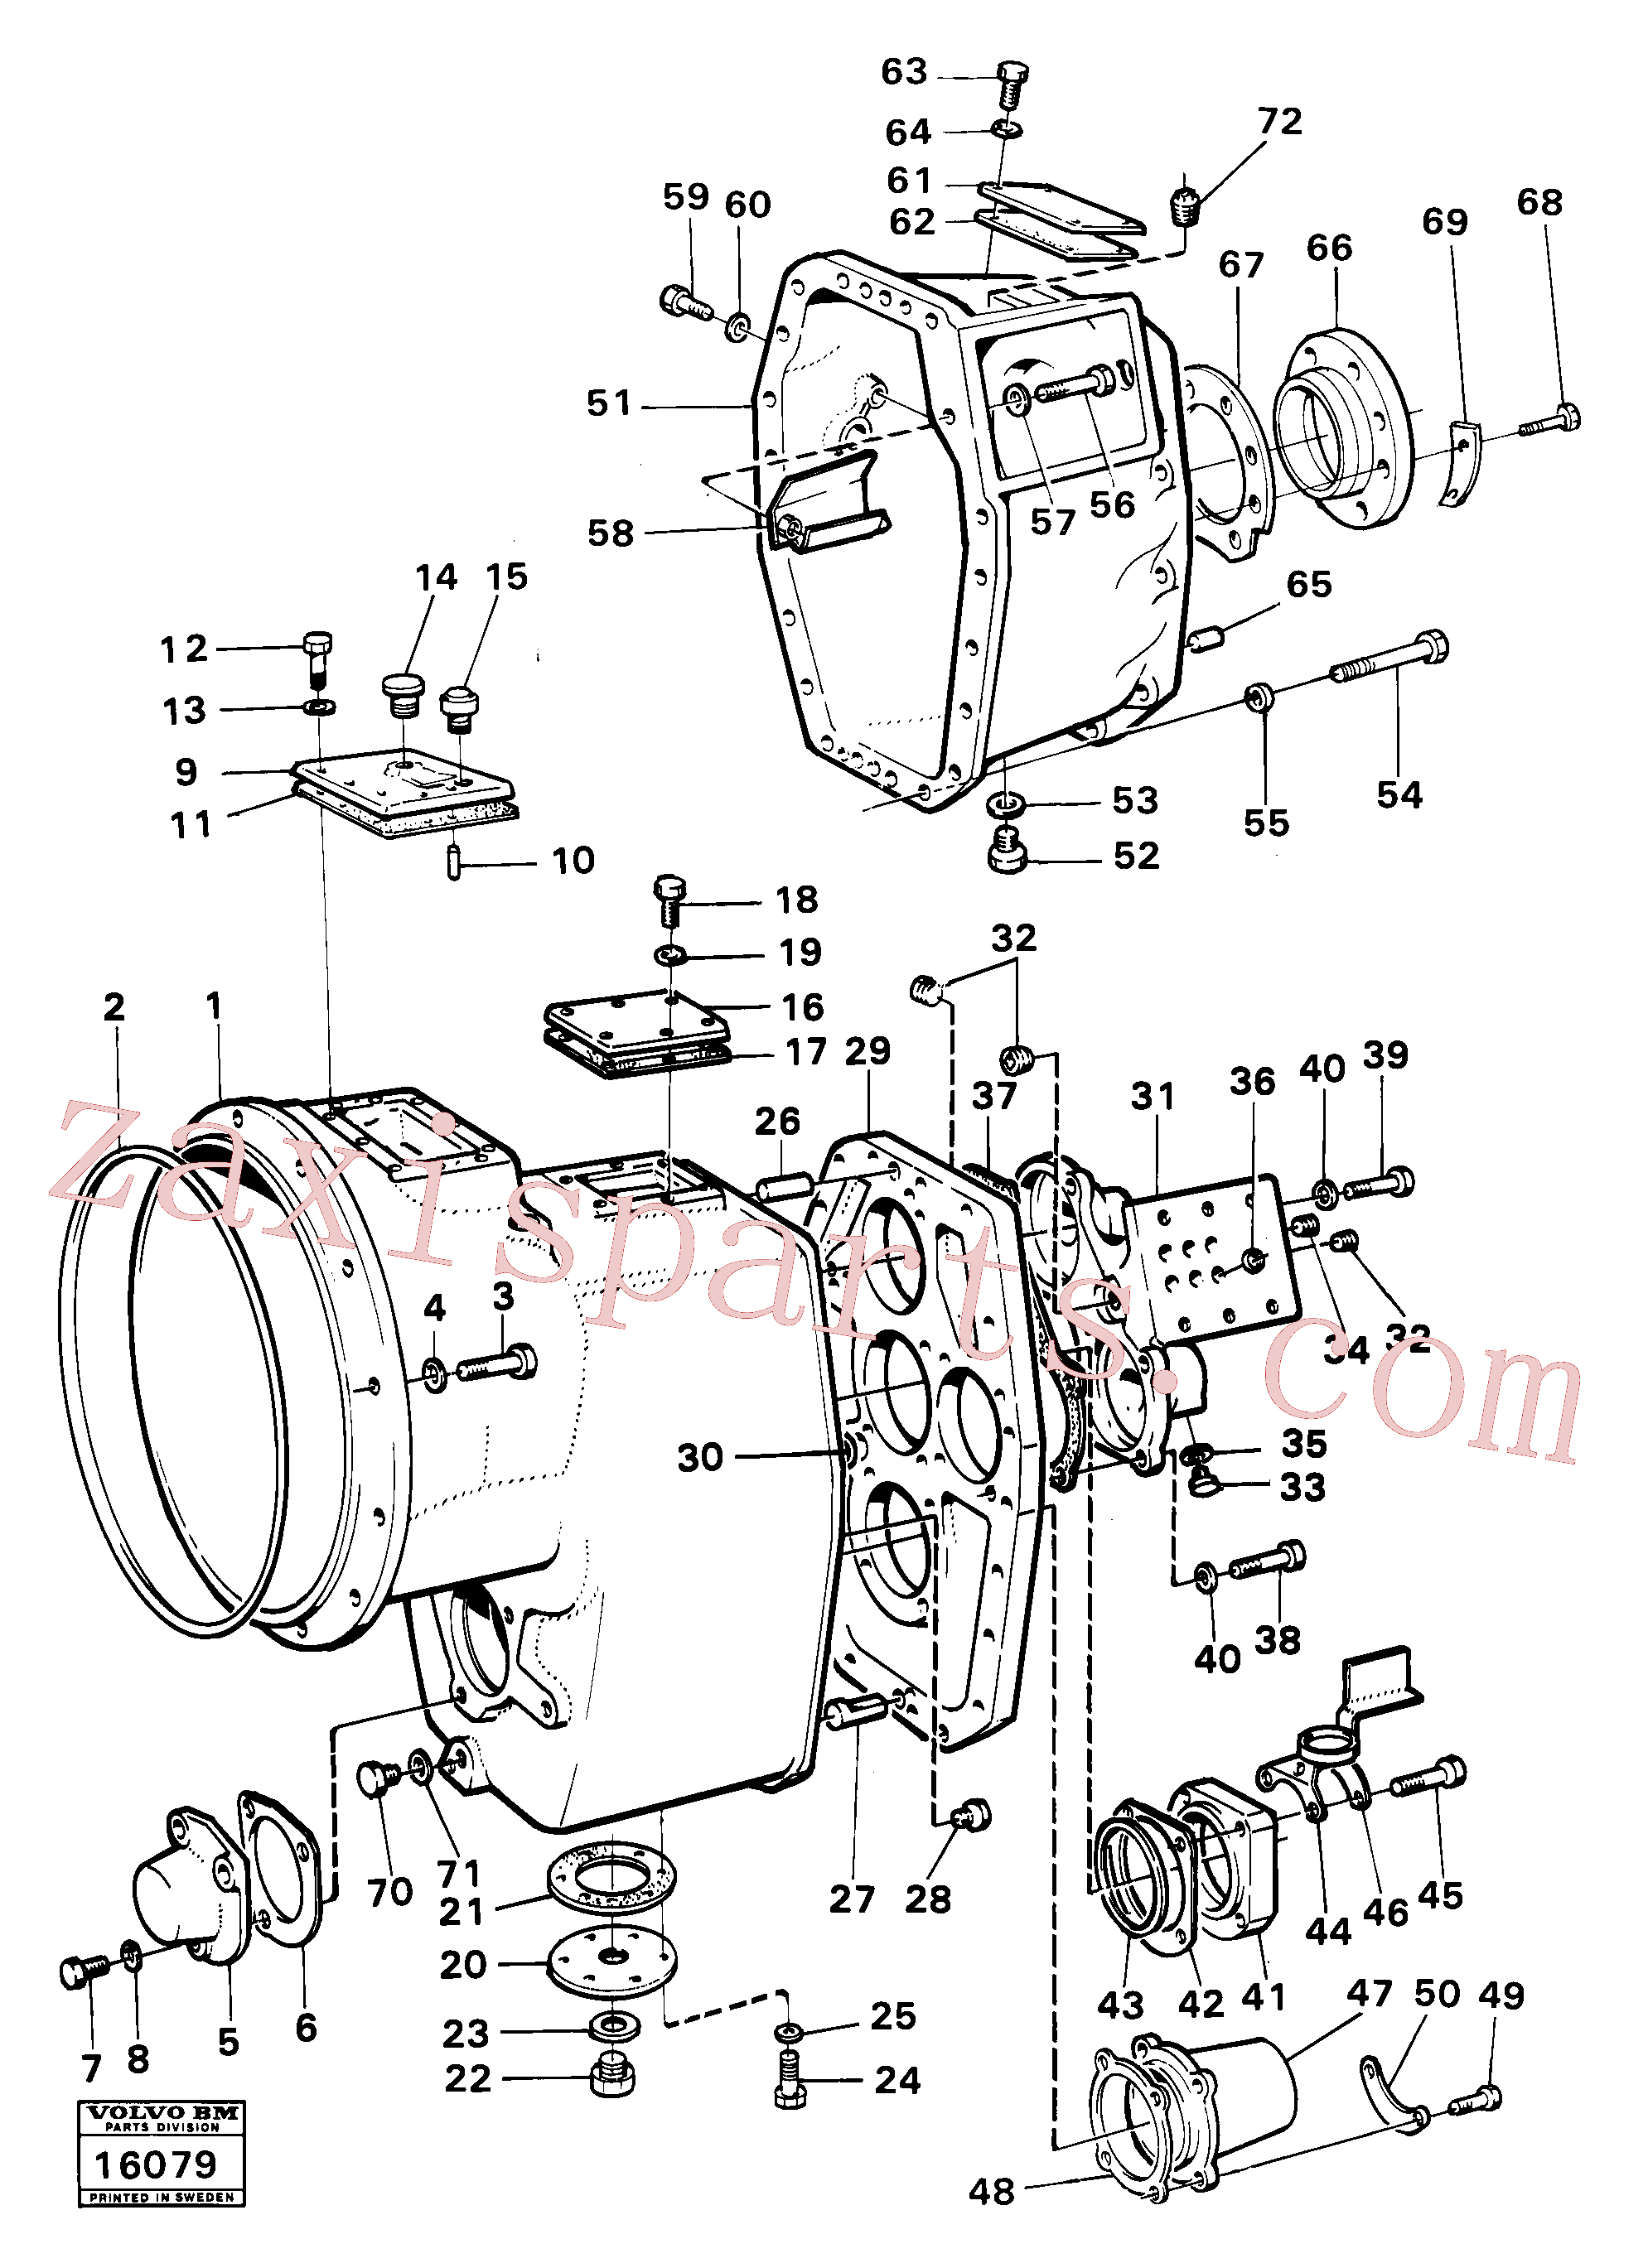 VOE7242168 for Volvo Housing,covers and boltings(16079 assembly)